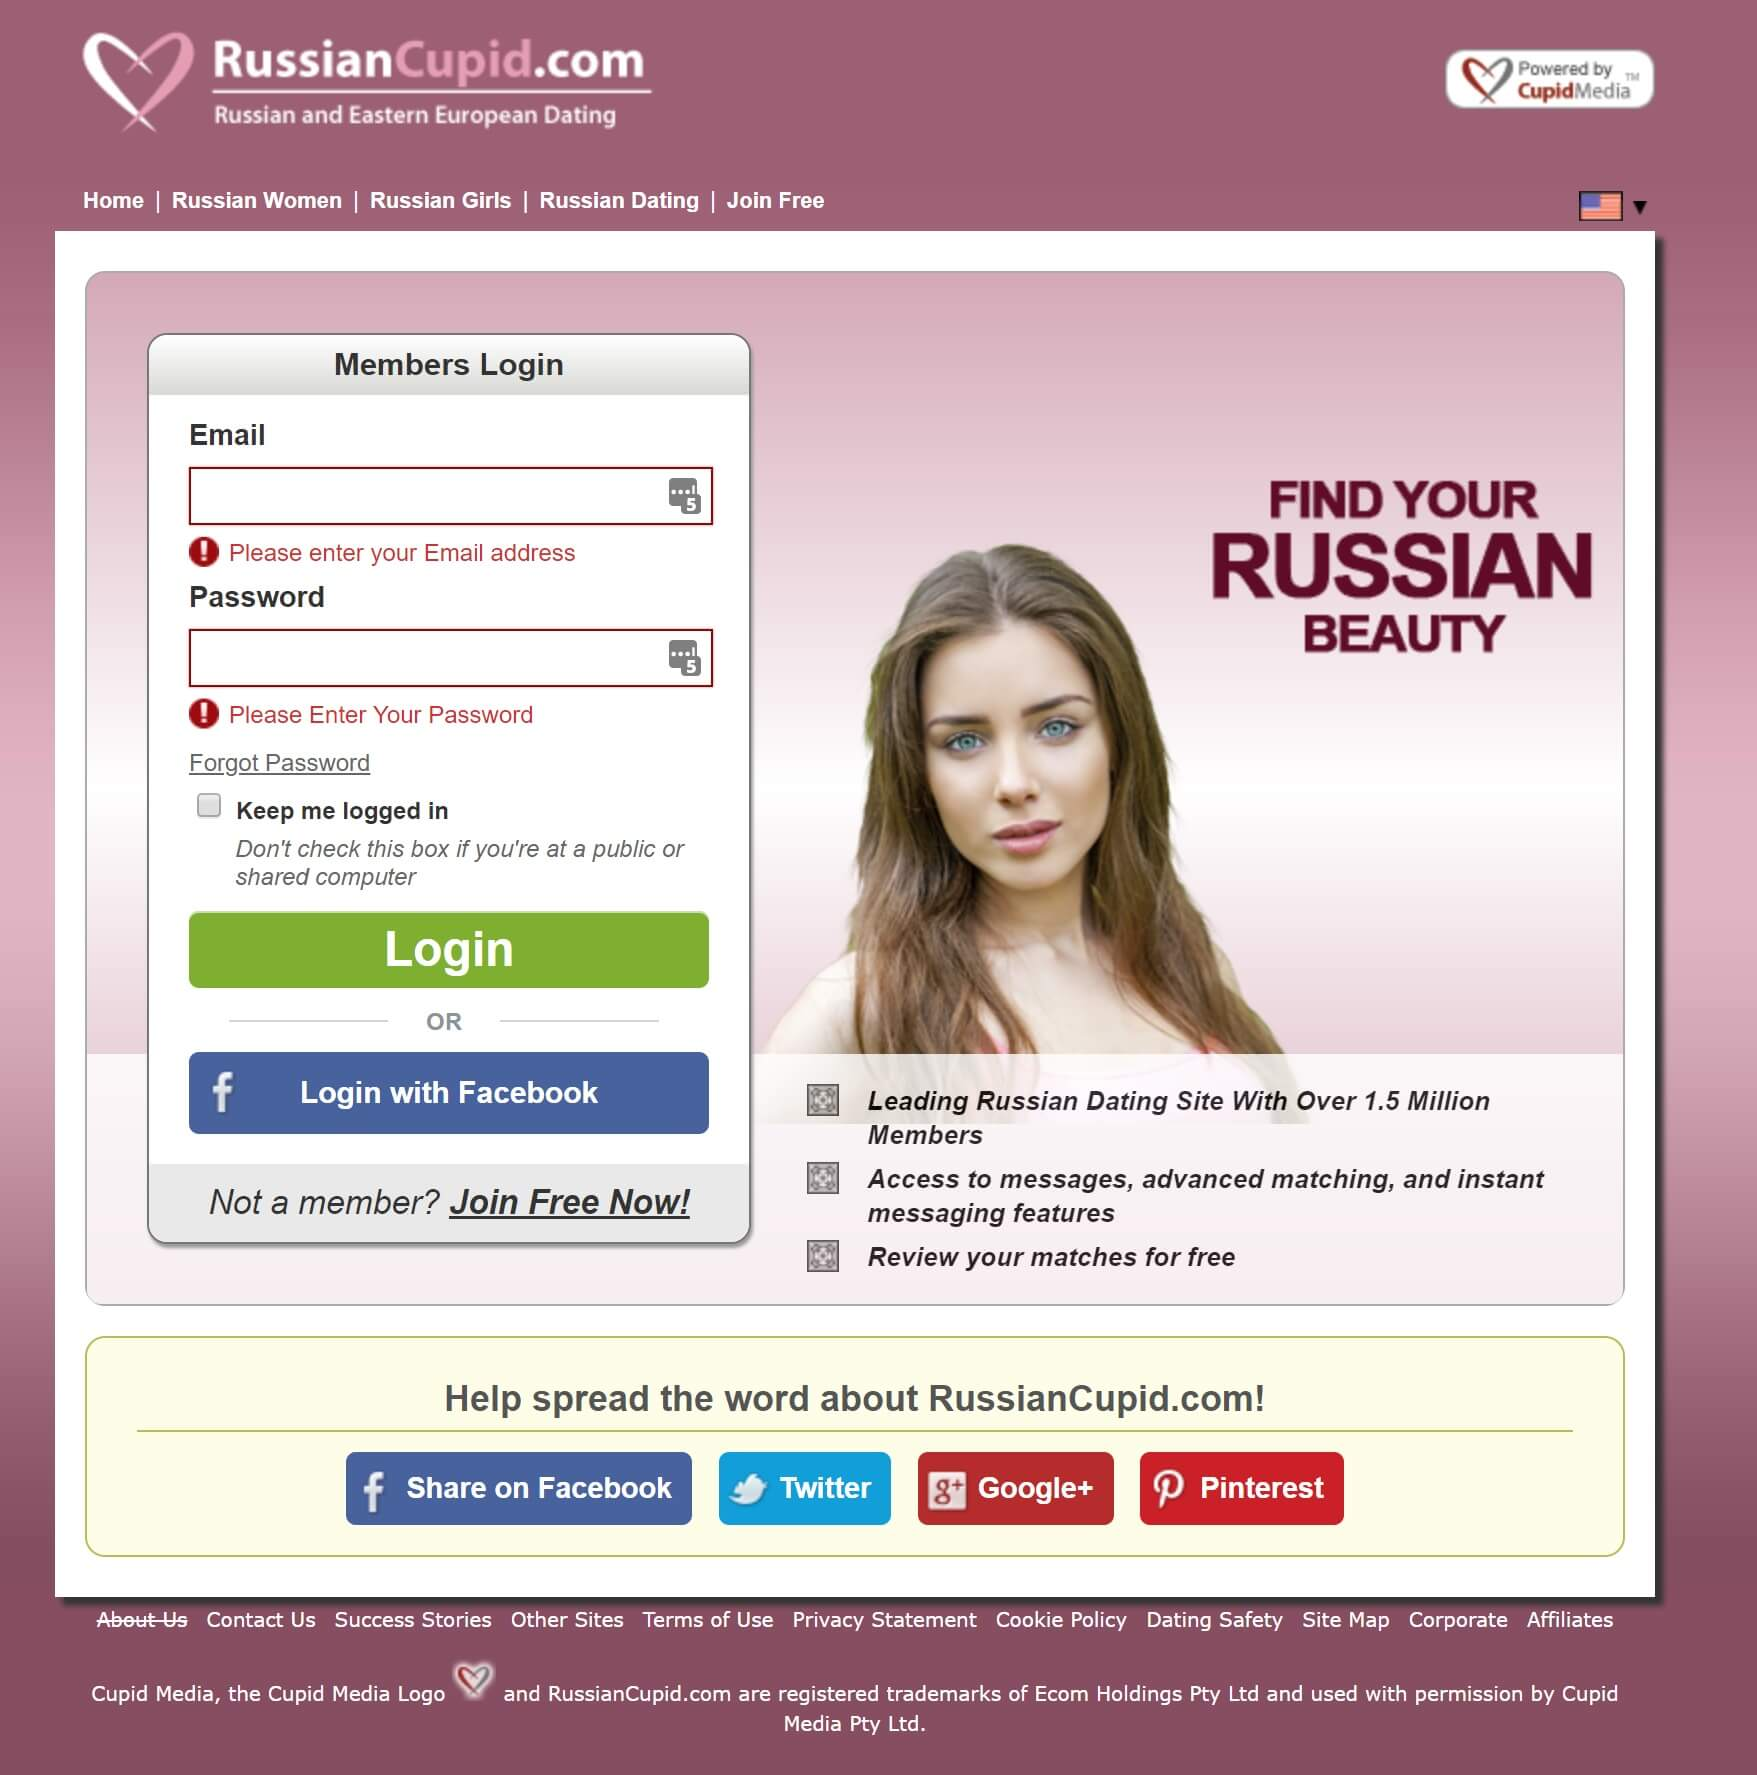 satiiri on online dating